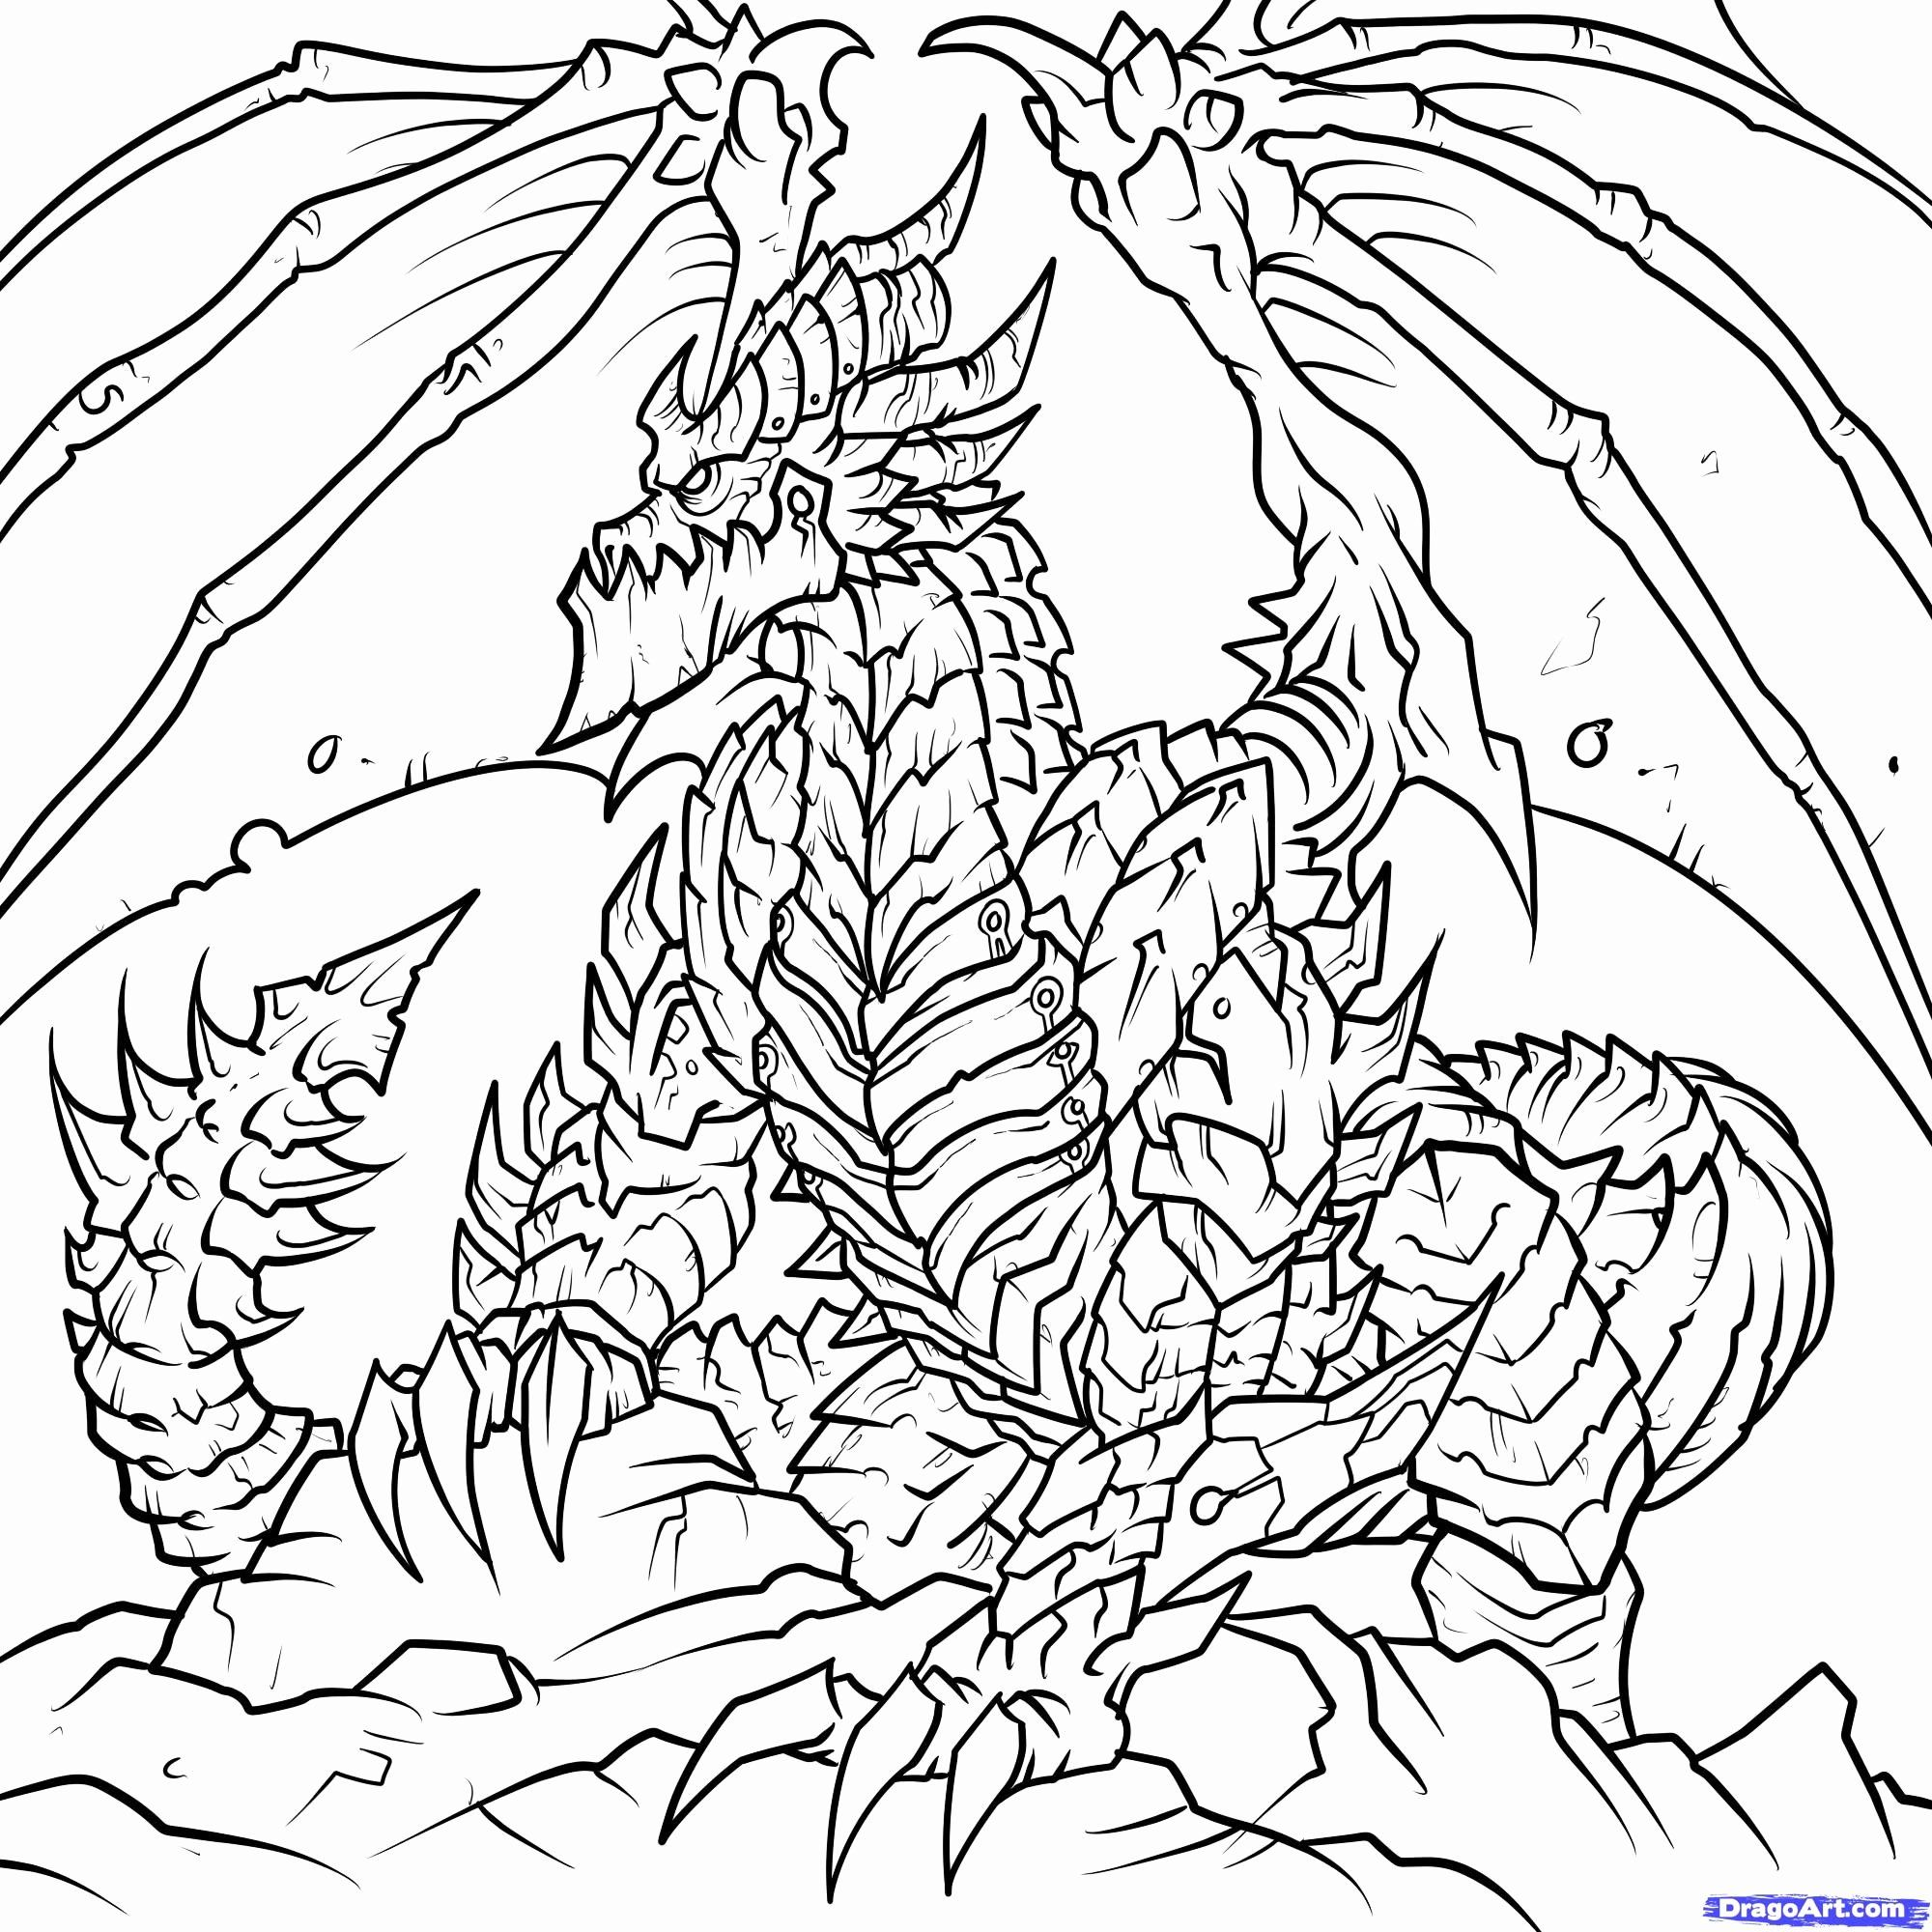 World Of Warcraft Coloring Book Awesome How To Draw Deathwing World Of Warcraft Deathwing Step In 2020 World Of Warcraft Coloring Books Colorful Drawings